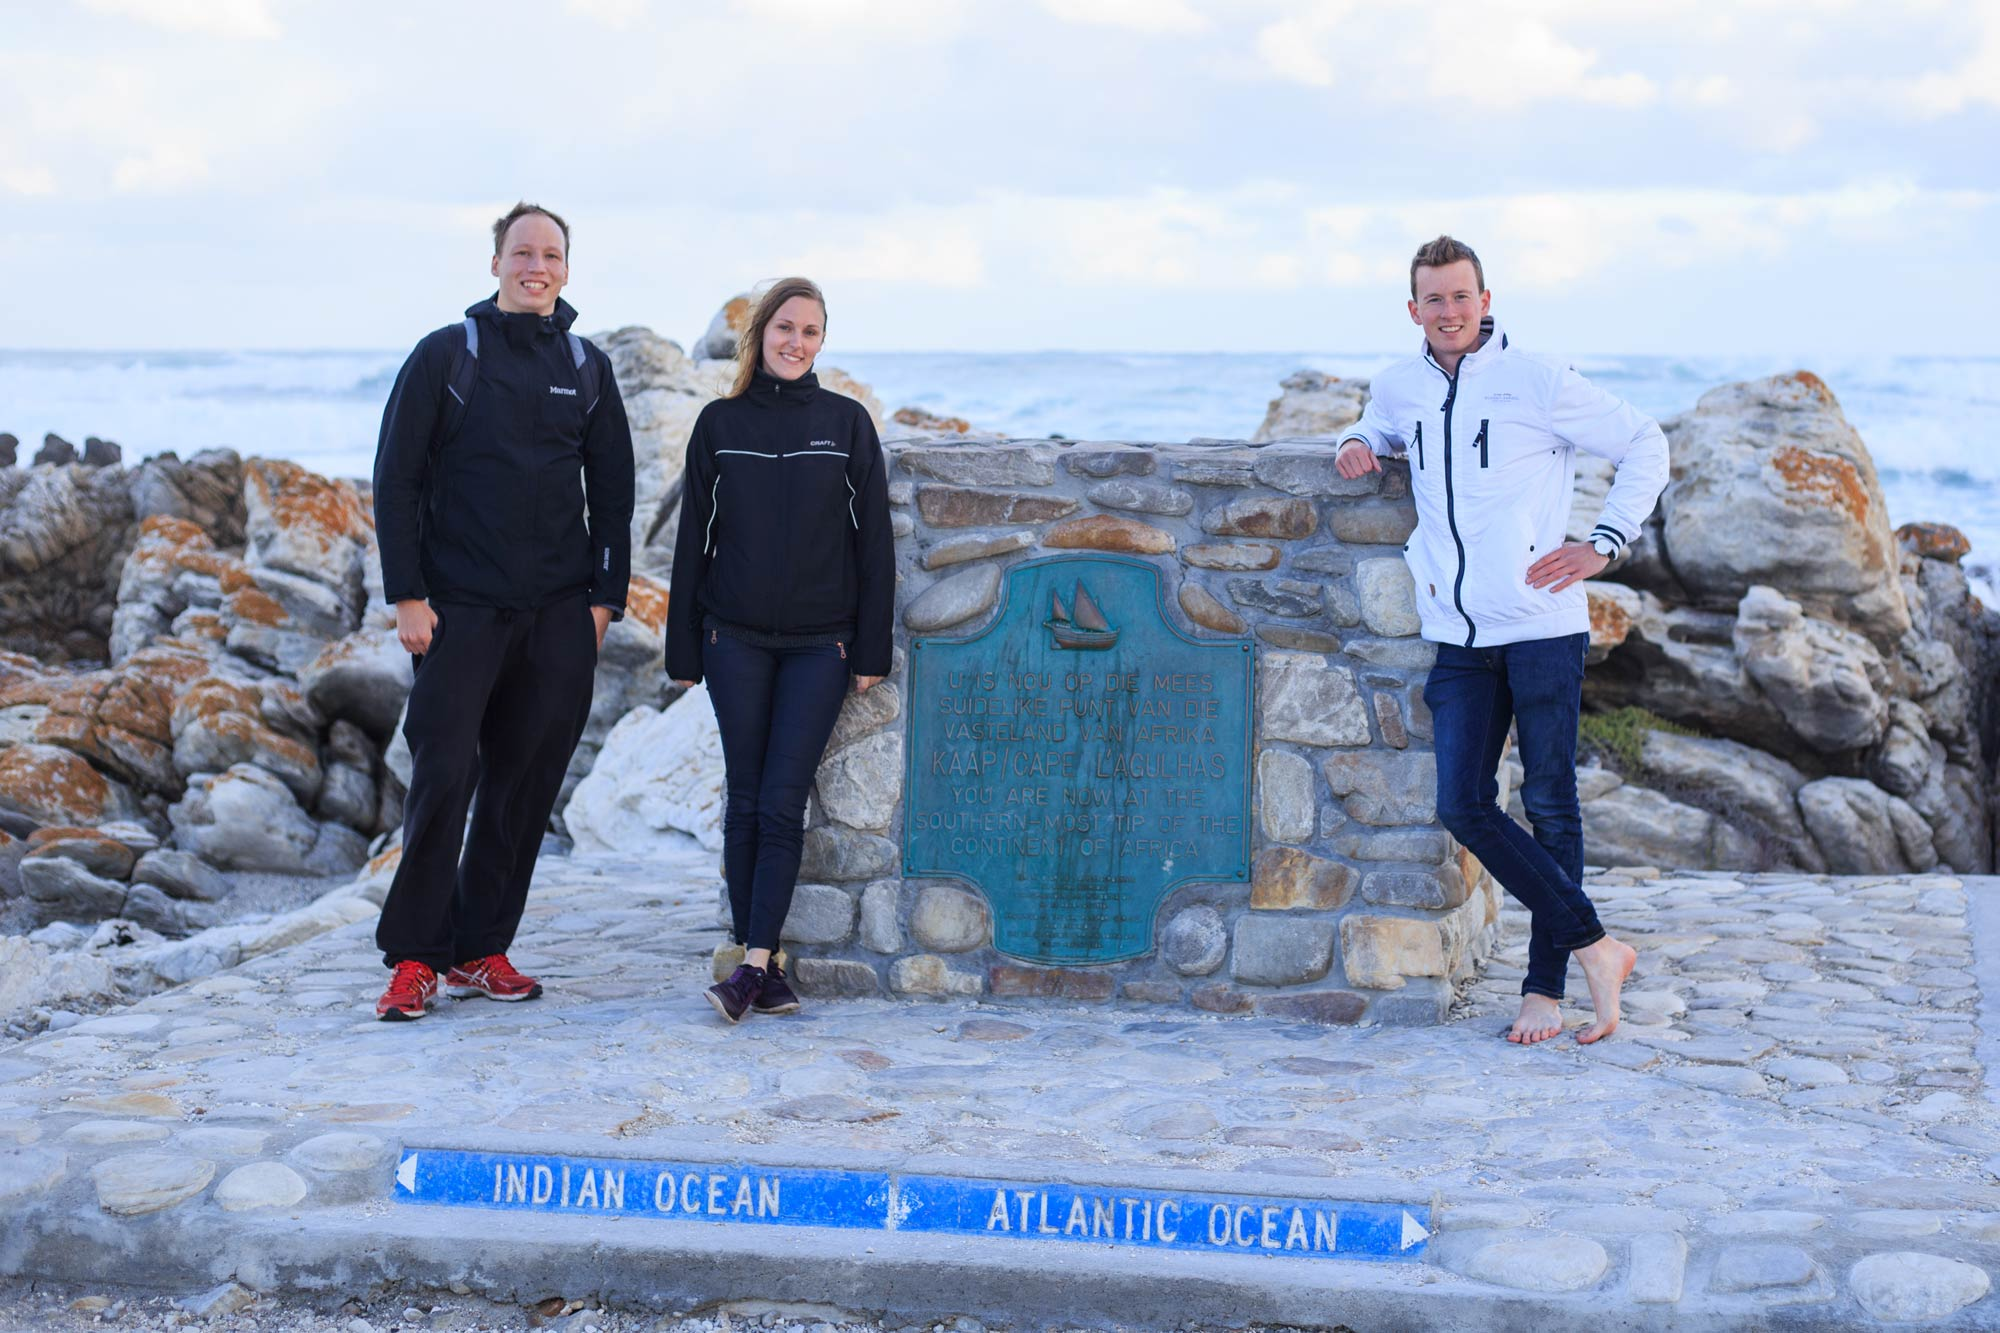 At the southernmost point of Africa, Cape Agulhas.